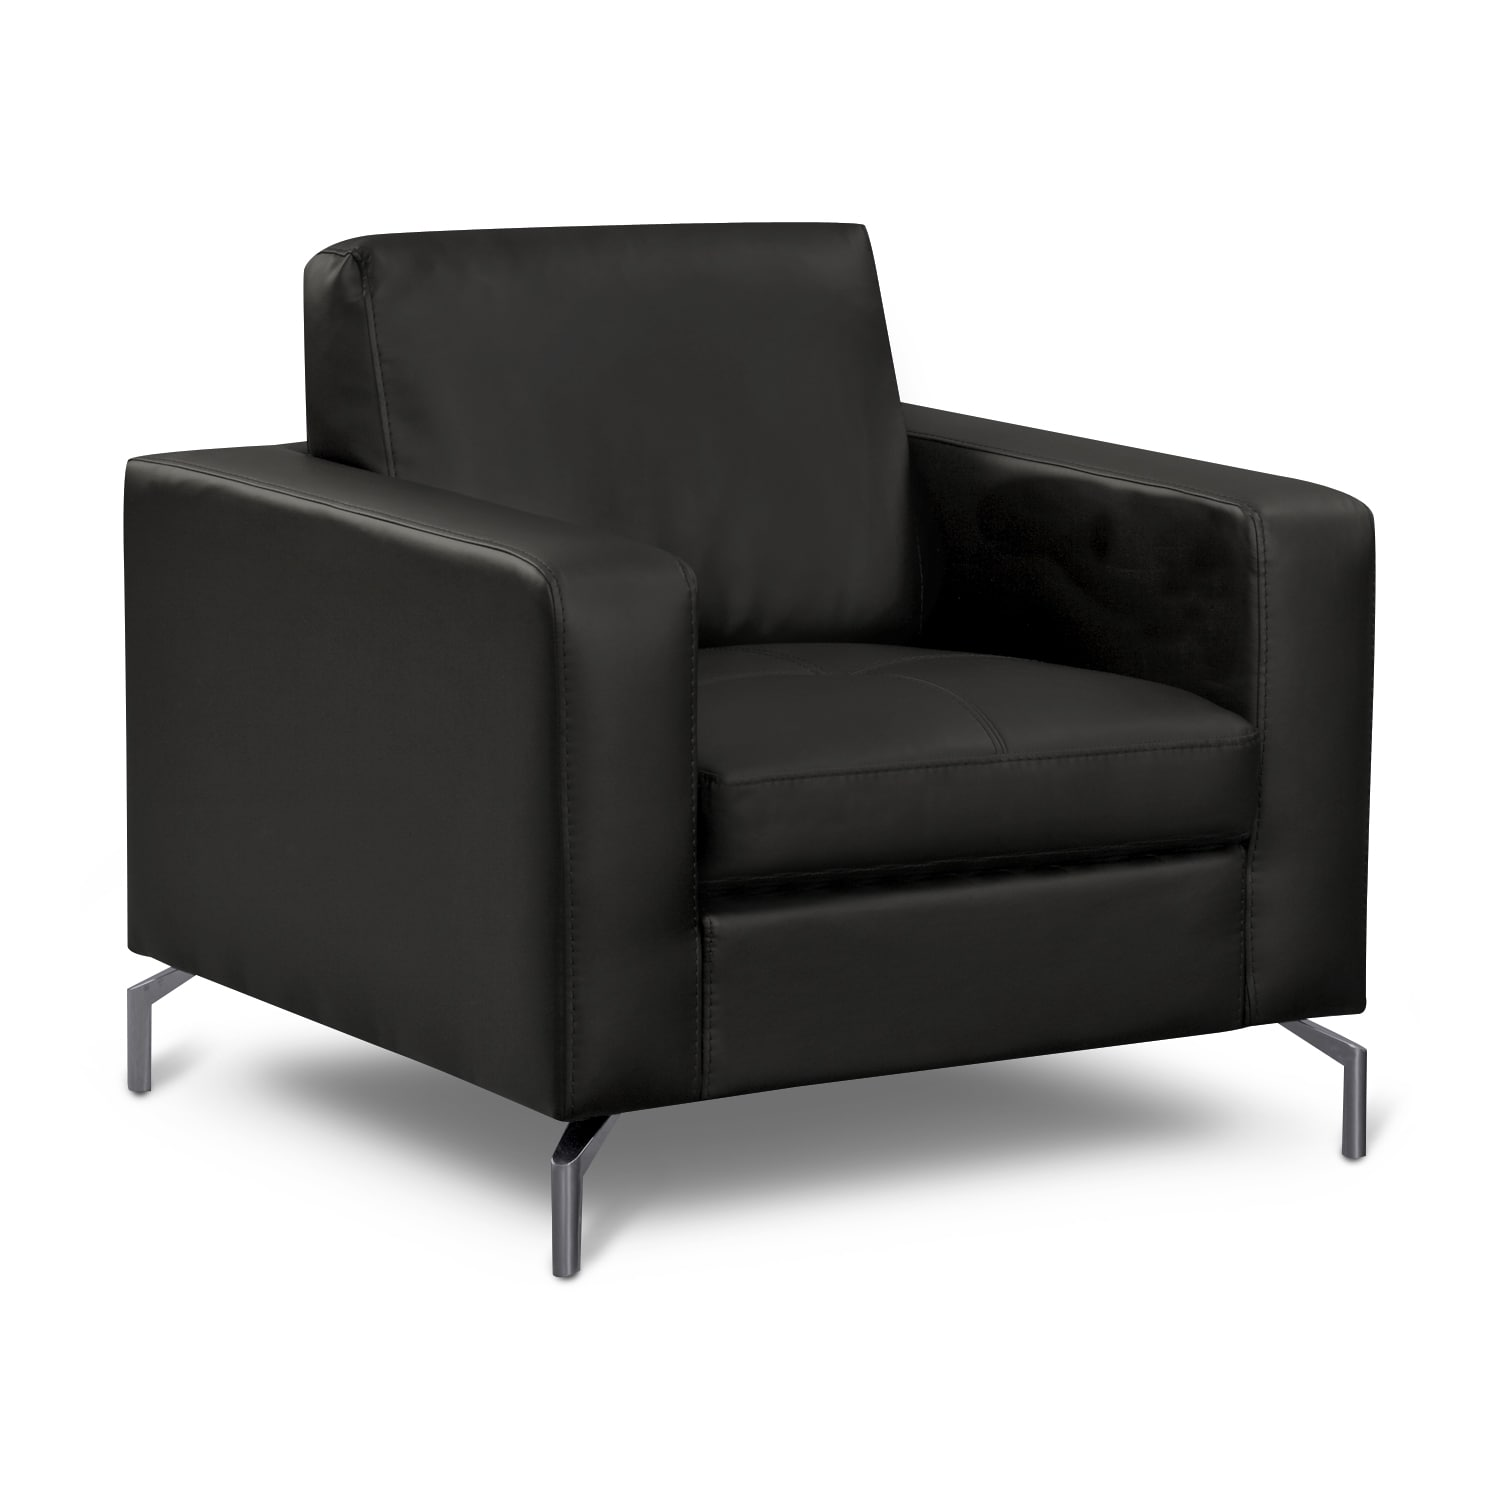 Living Room Furniture - Casino II Chair